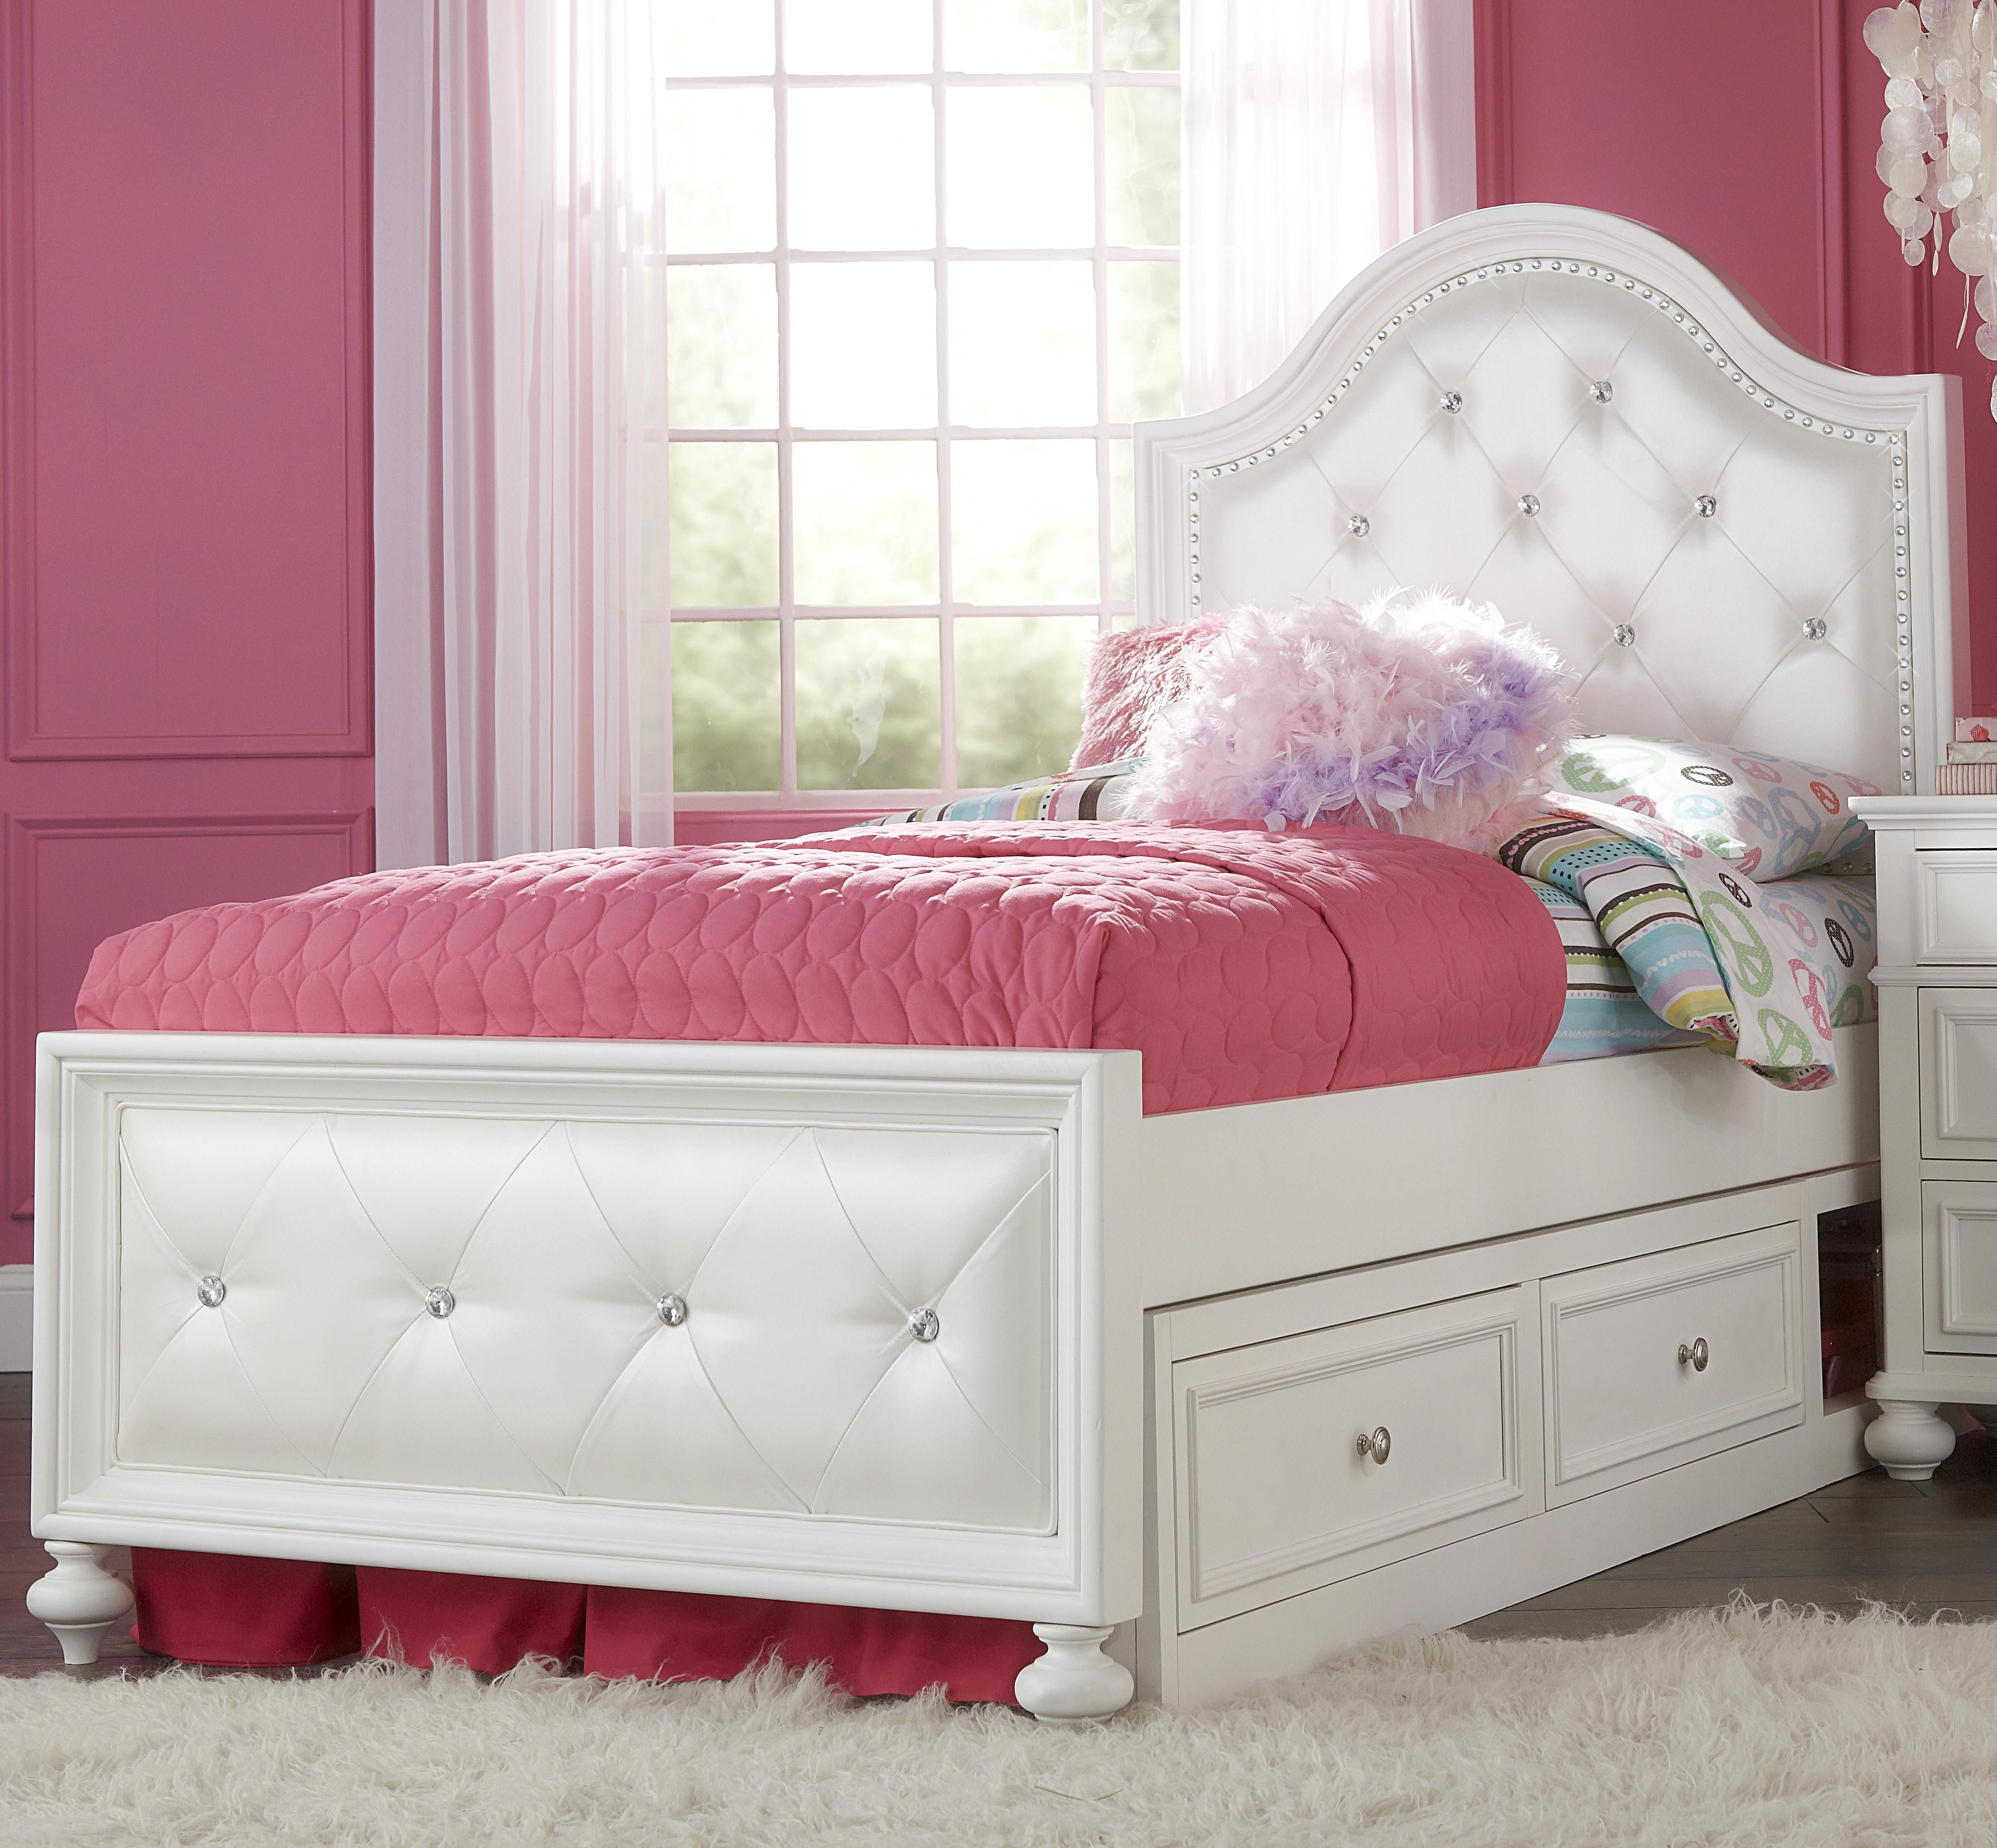 Madison Twin Upholstered Bed With Underbed Storage By Legacy Classic Kids Upholstered Full Bed Girls Bedroom Furniture Legacy Classic Furniture